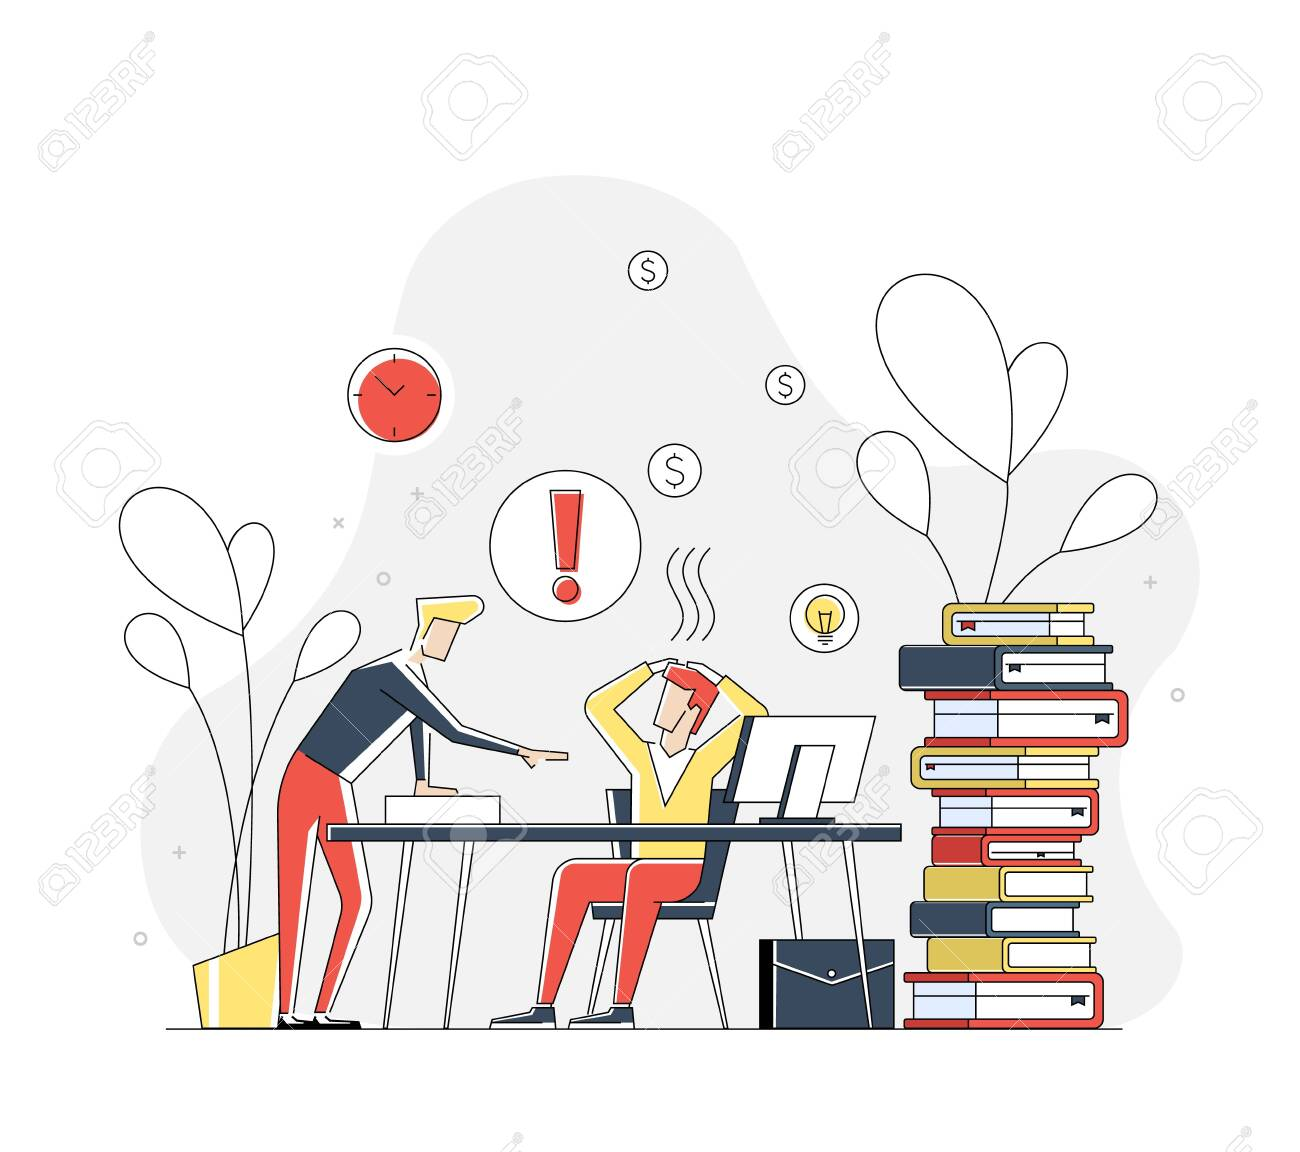 Illustration of flat linear geometric people in working stress concept. Interacting people.Illustration for landing page. - 146162963